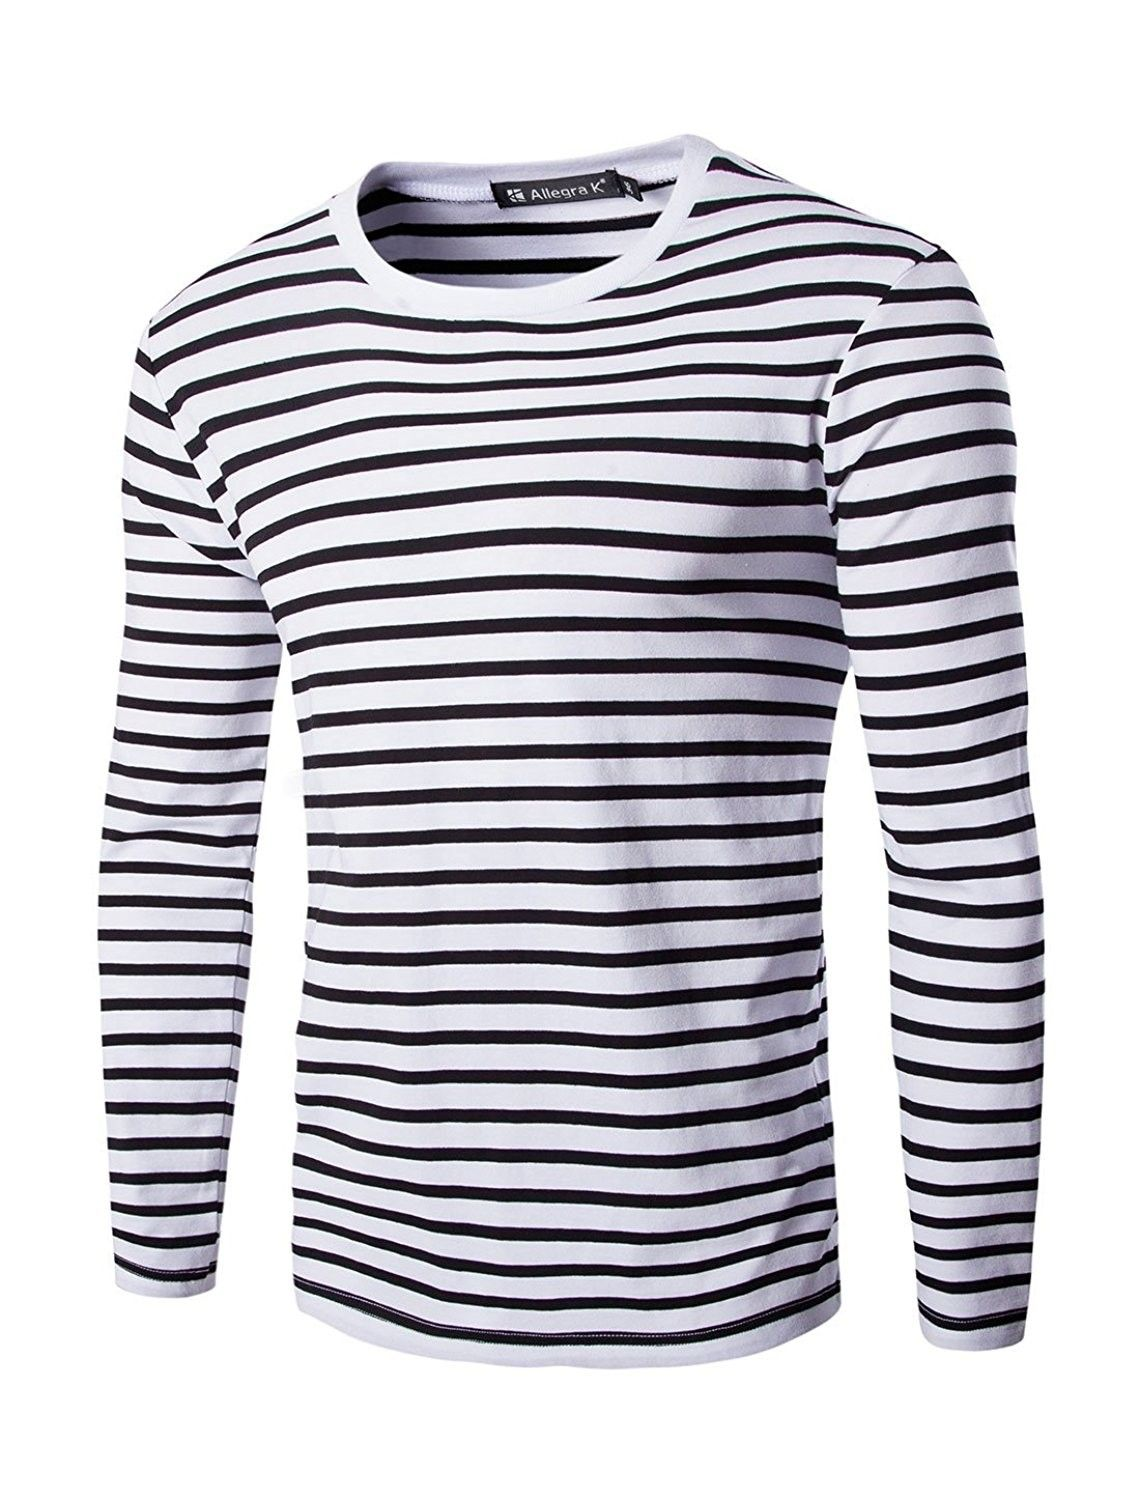 Men Casual Pullover Basic Crew Neck Long Sleeve Striped Tee T Shirt